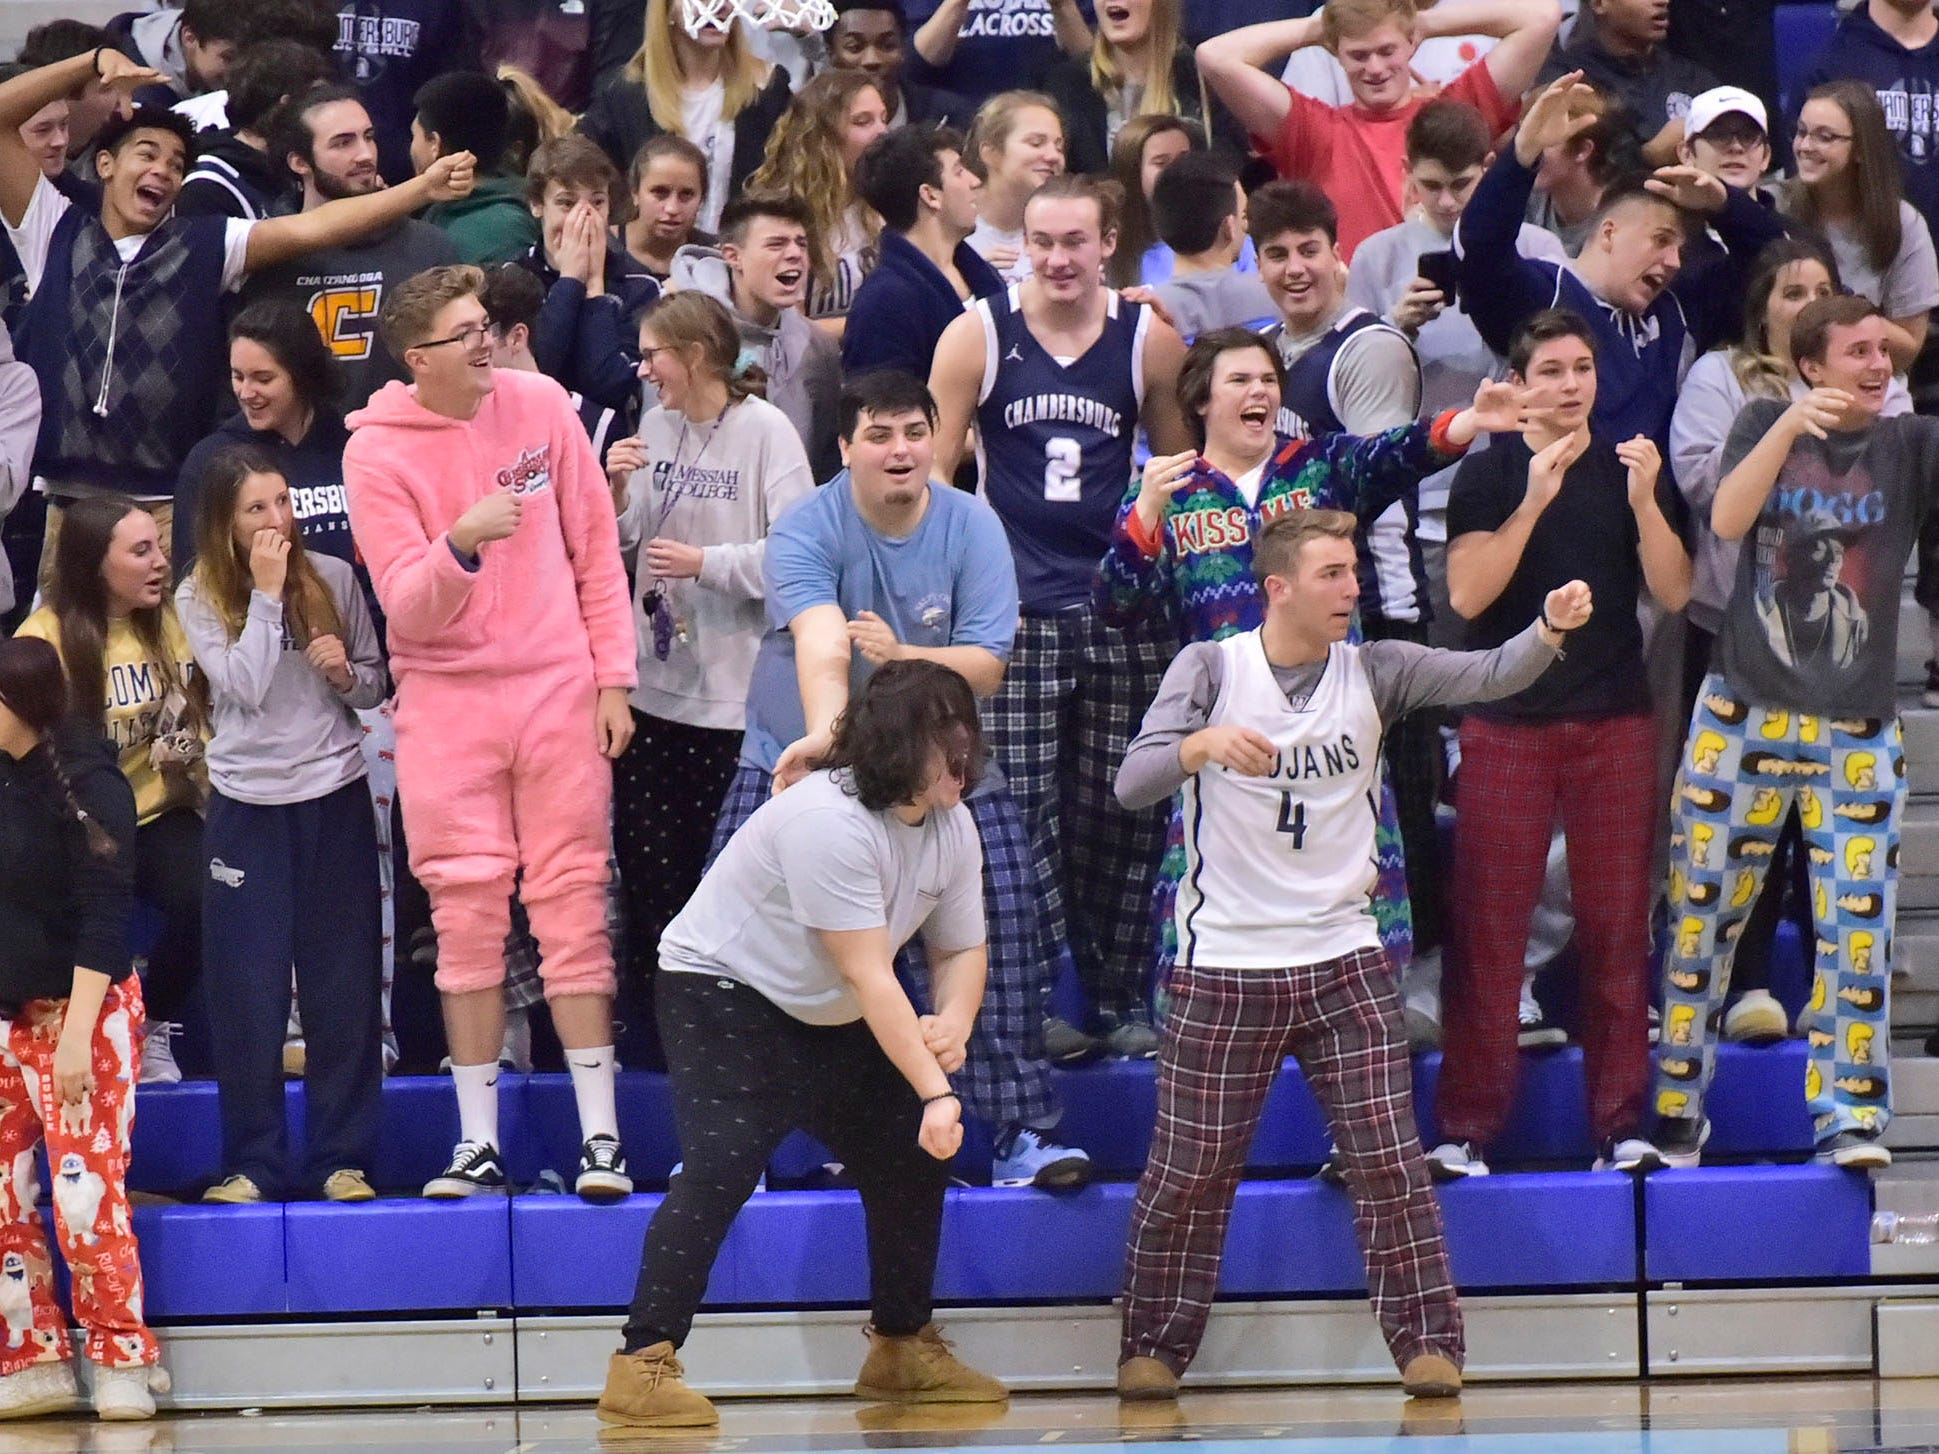 Trojan fans celebrate a tie score. Chambersburg dropped a buzzer-beater 42-40 to State College in PIAA D3 action, Friday, Dec. 14, 2018.